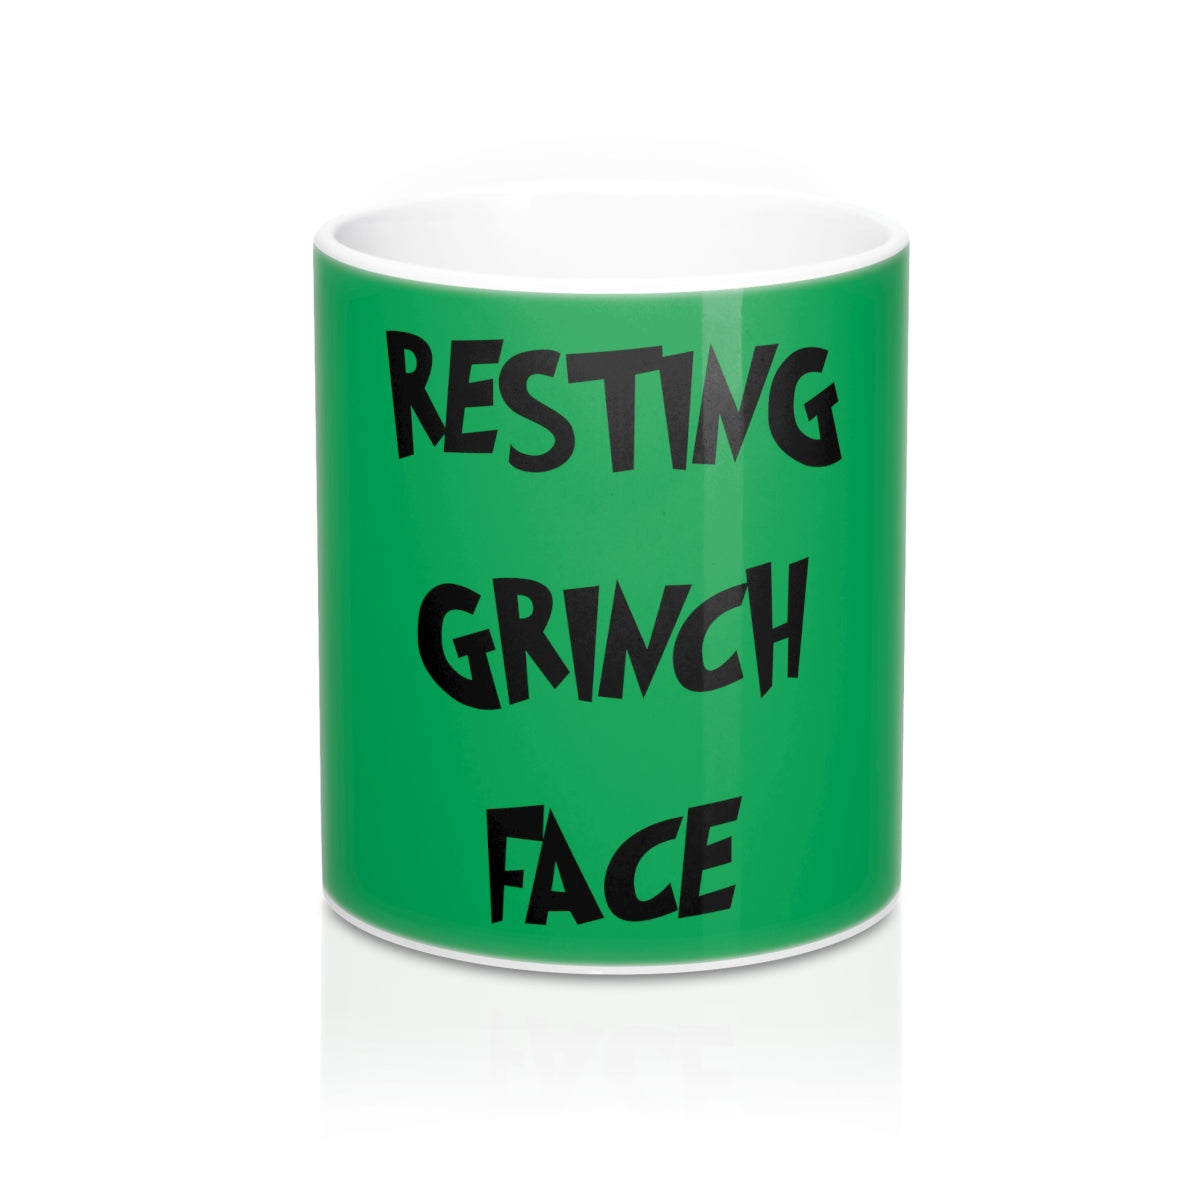 Resting Grinch Face Mug 11oz